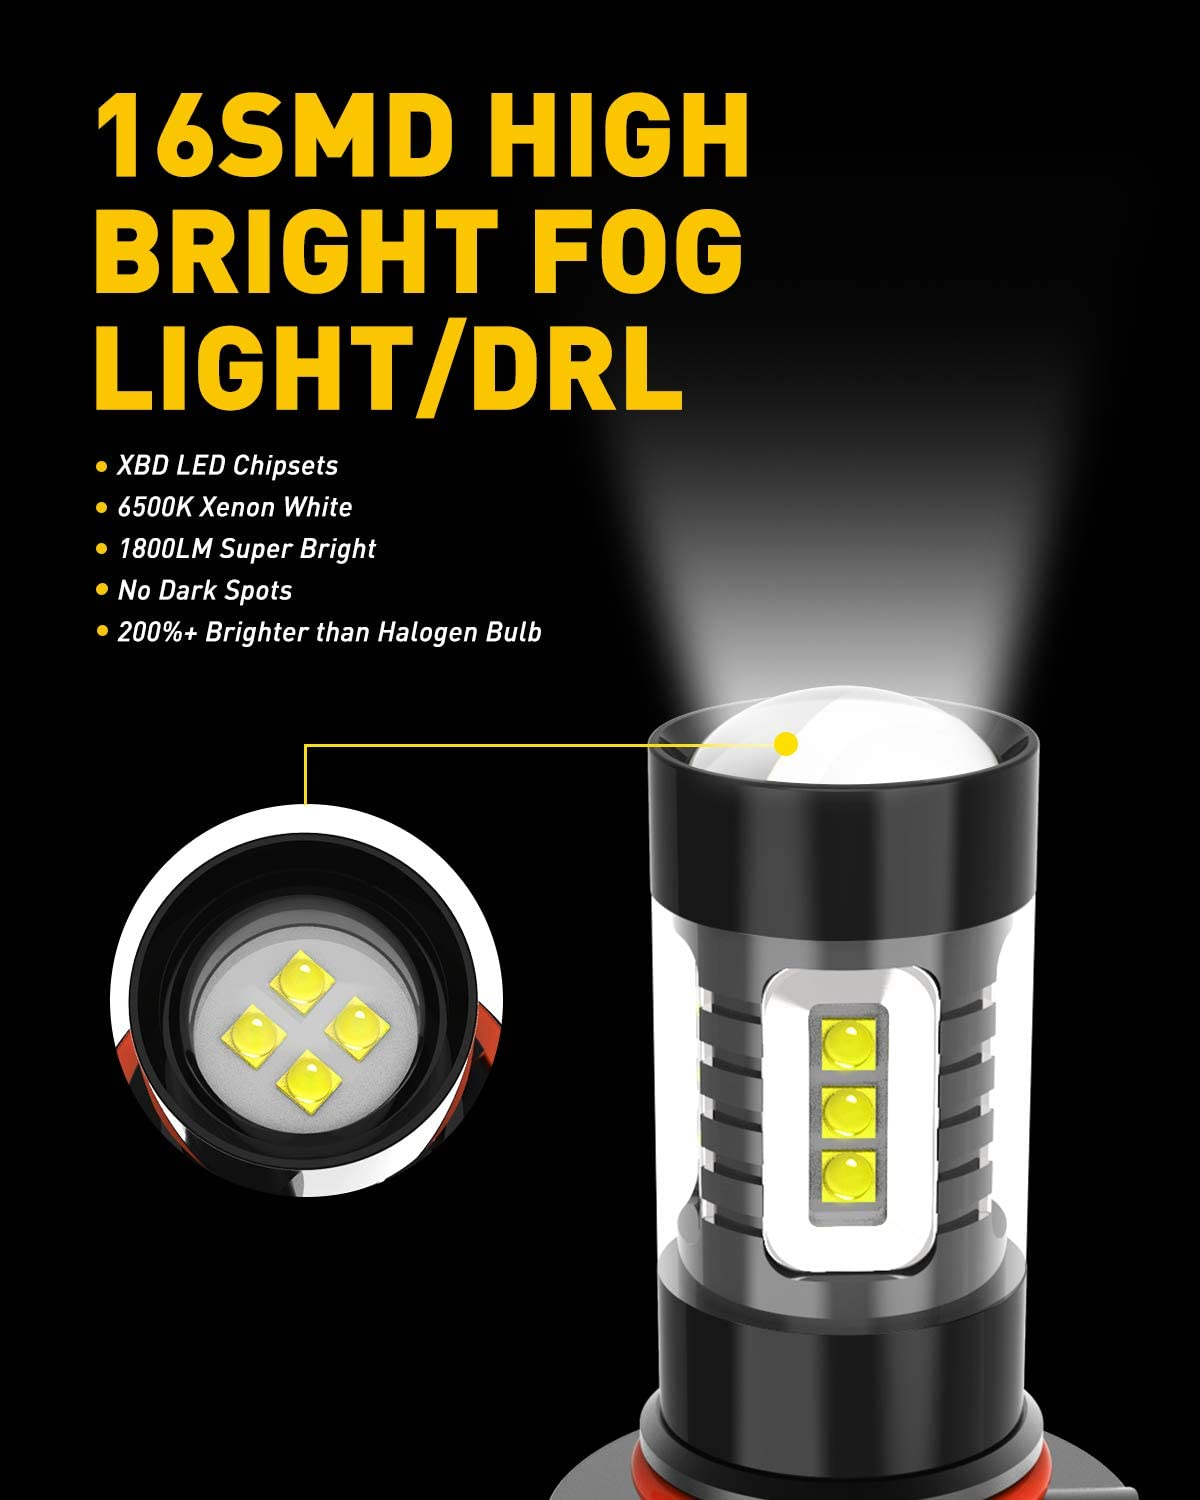 AUXITO H10 9140 9145 LED Fog Light Bulbs Max 80W High Power Extremely Bright 1800 Lumens 6500K Xenon White Replace for Fog Light or DRL,Pack of 2